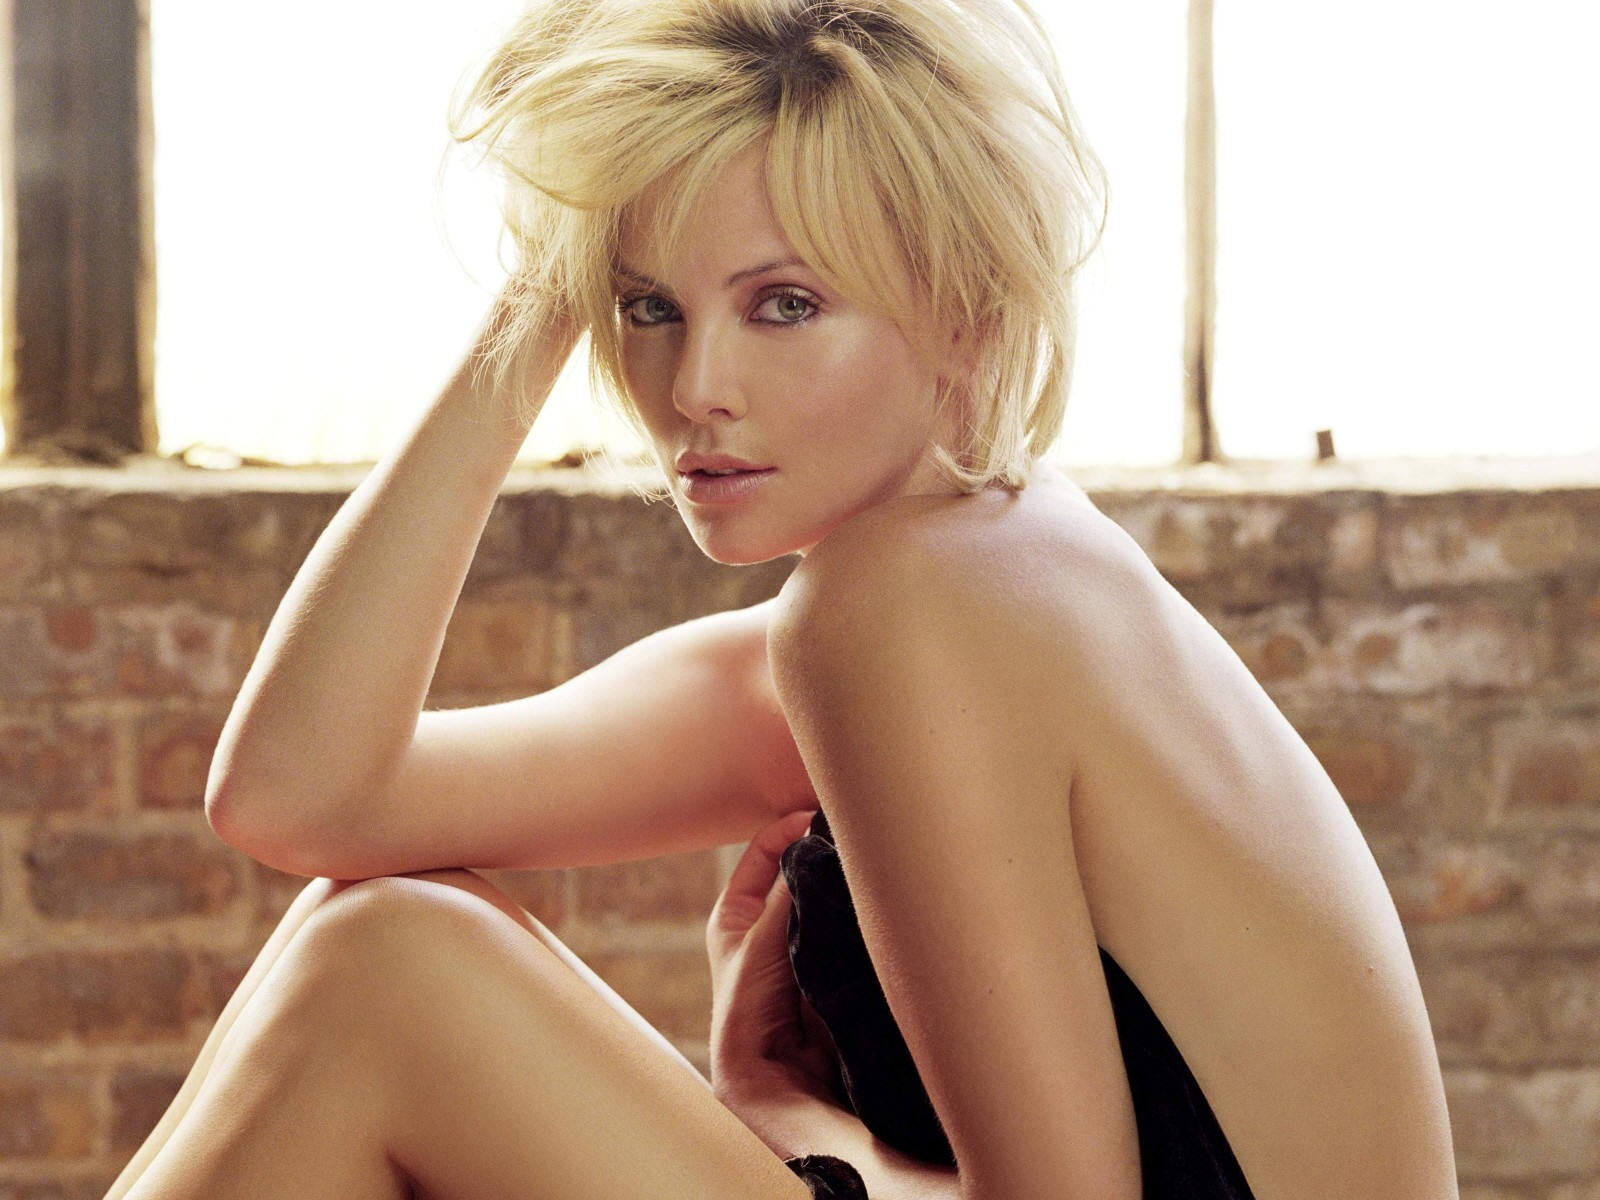 Beautiful celebrities charlize theron nude - Michelle diva futura channel ...